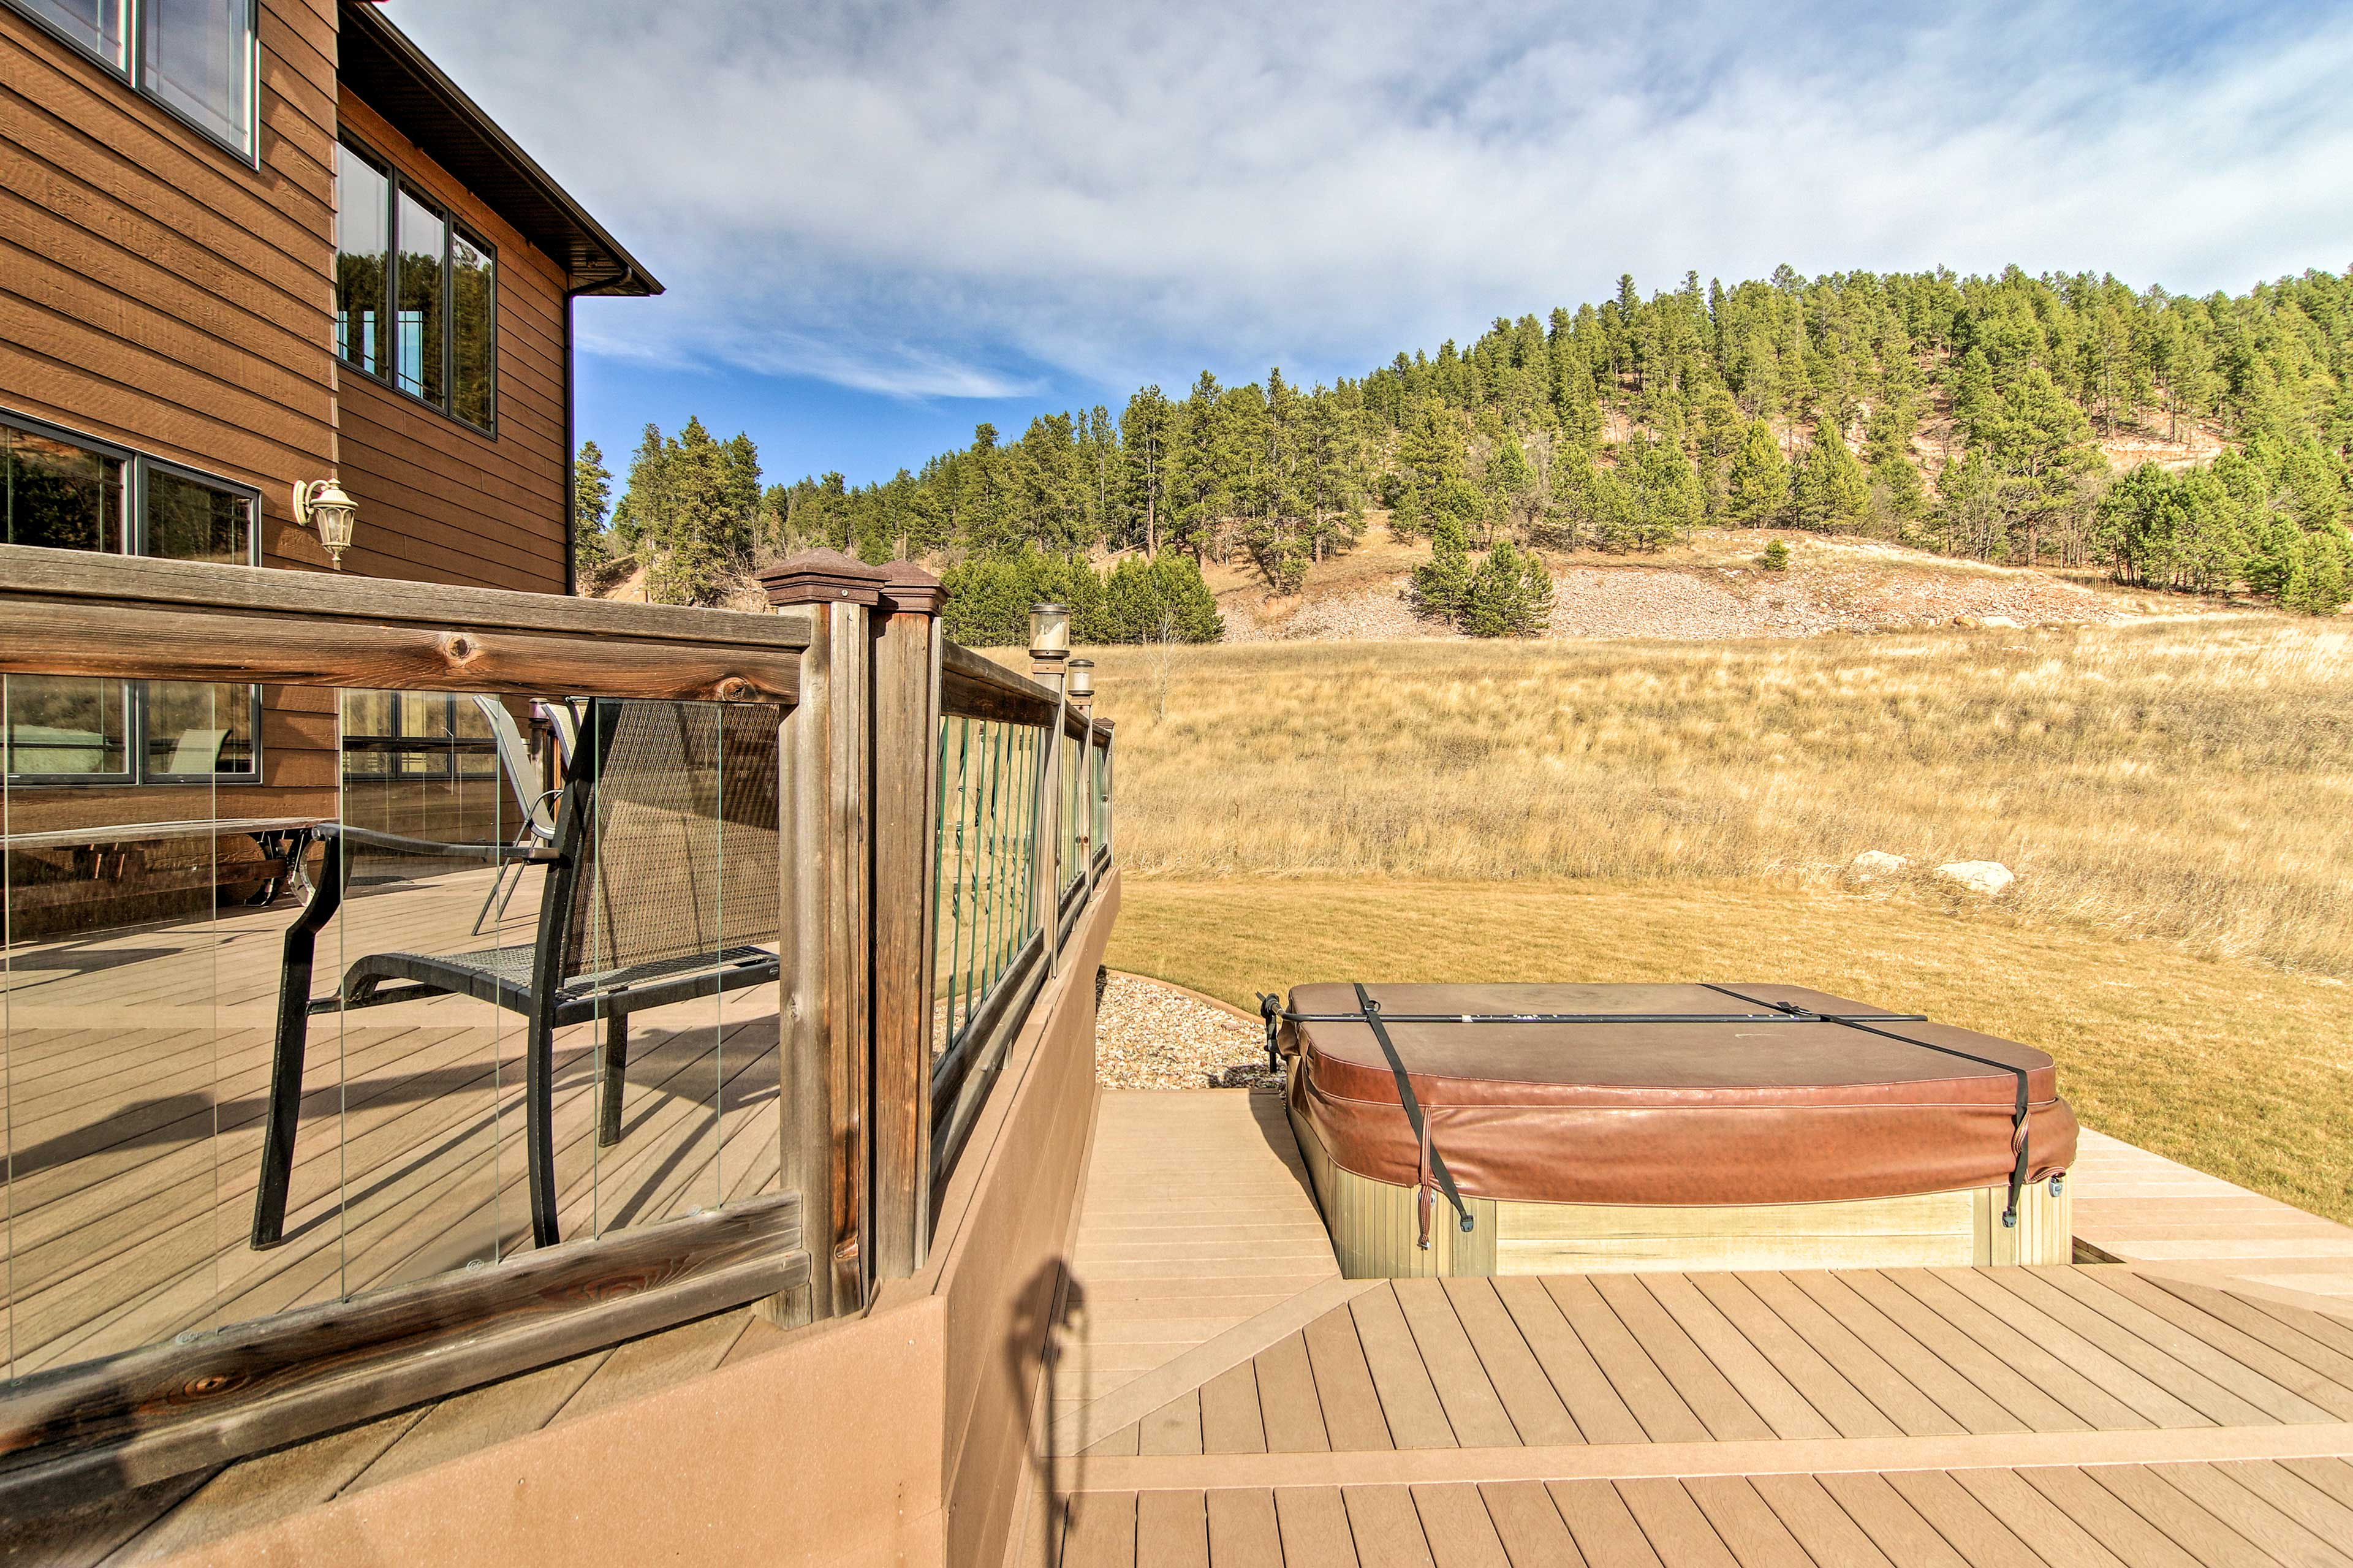 Take in the mountain views while soaking in your private hot tub.